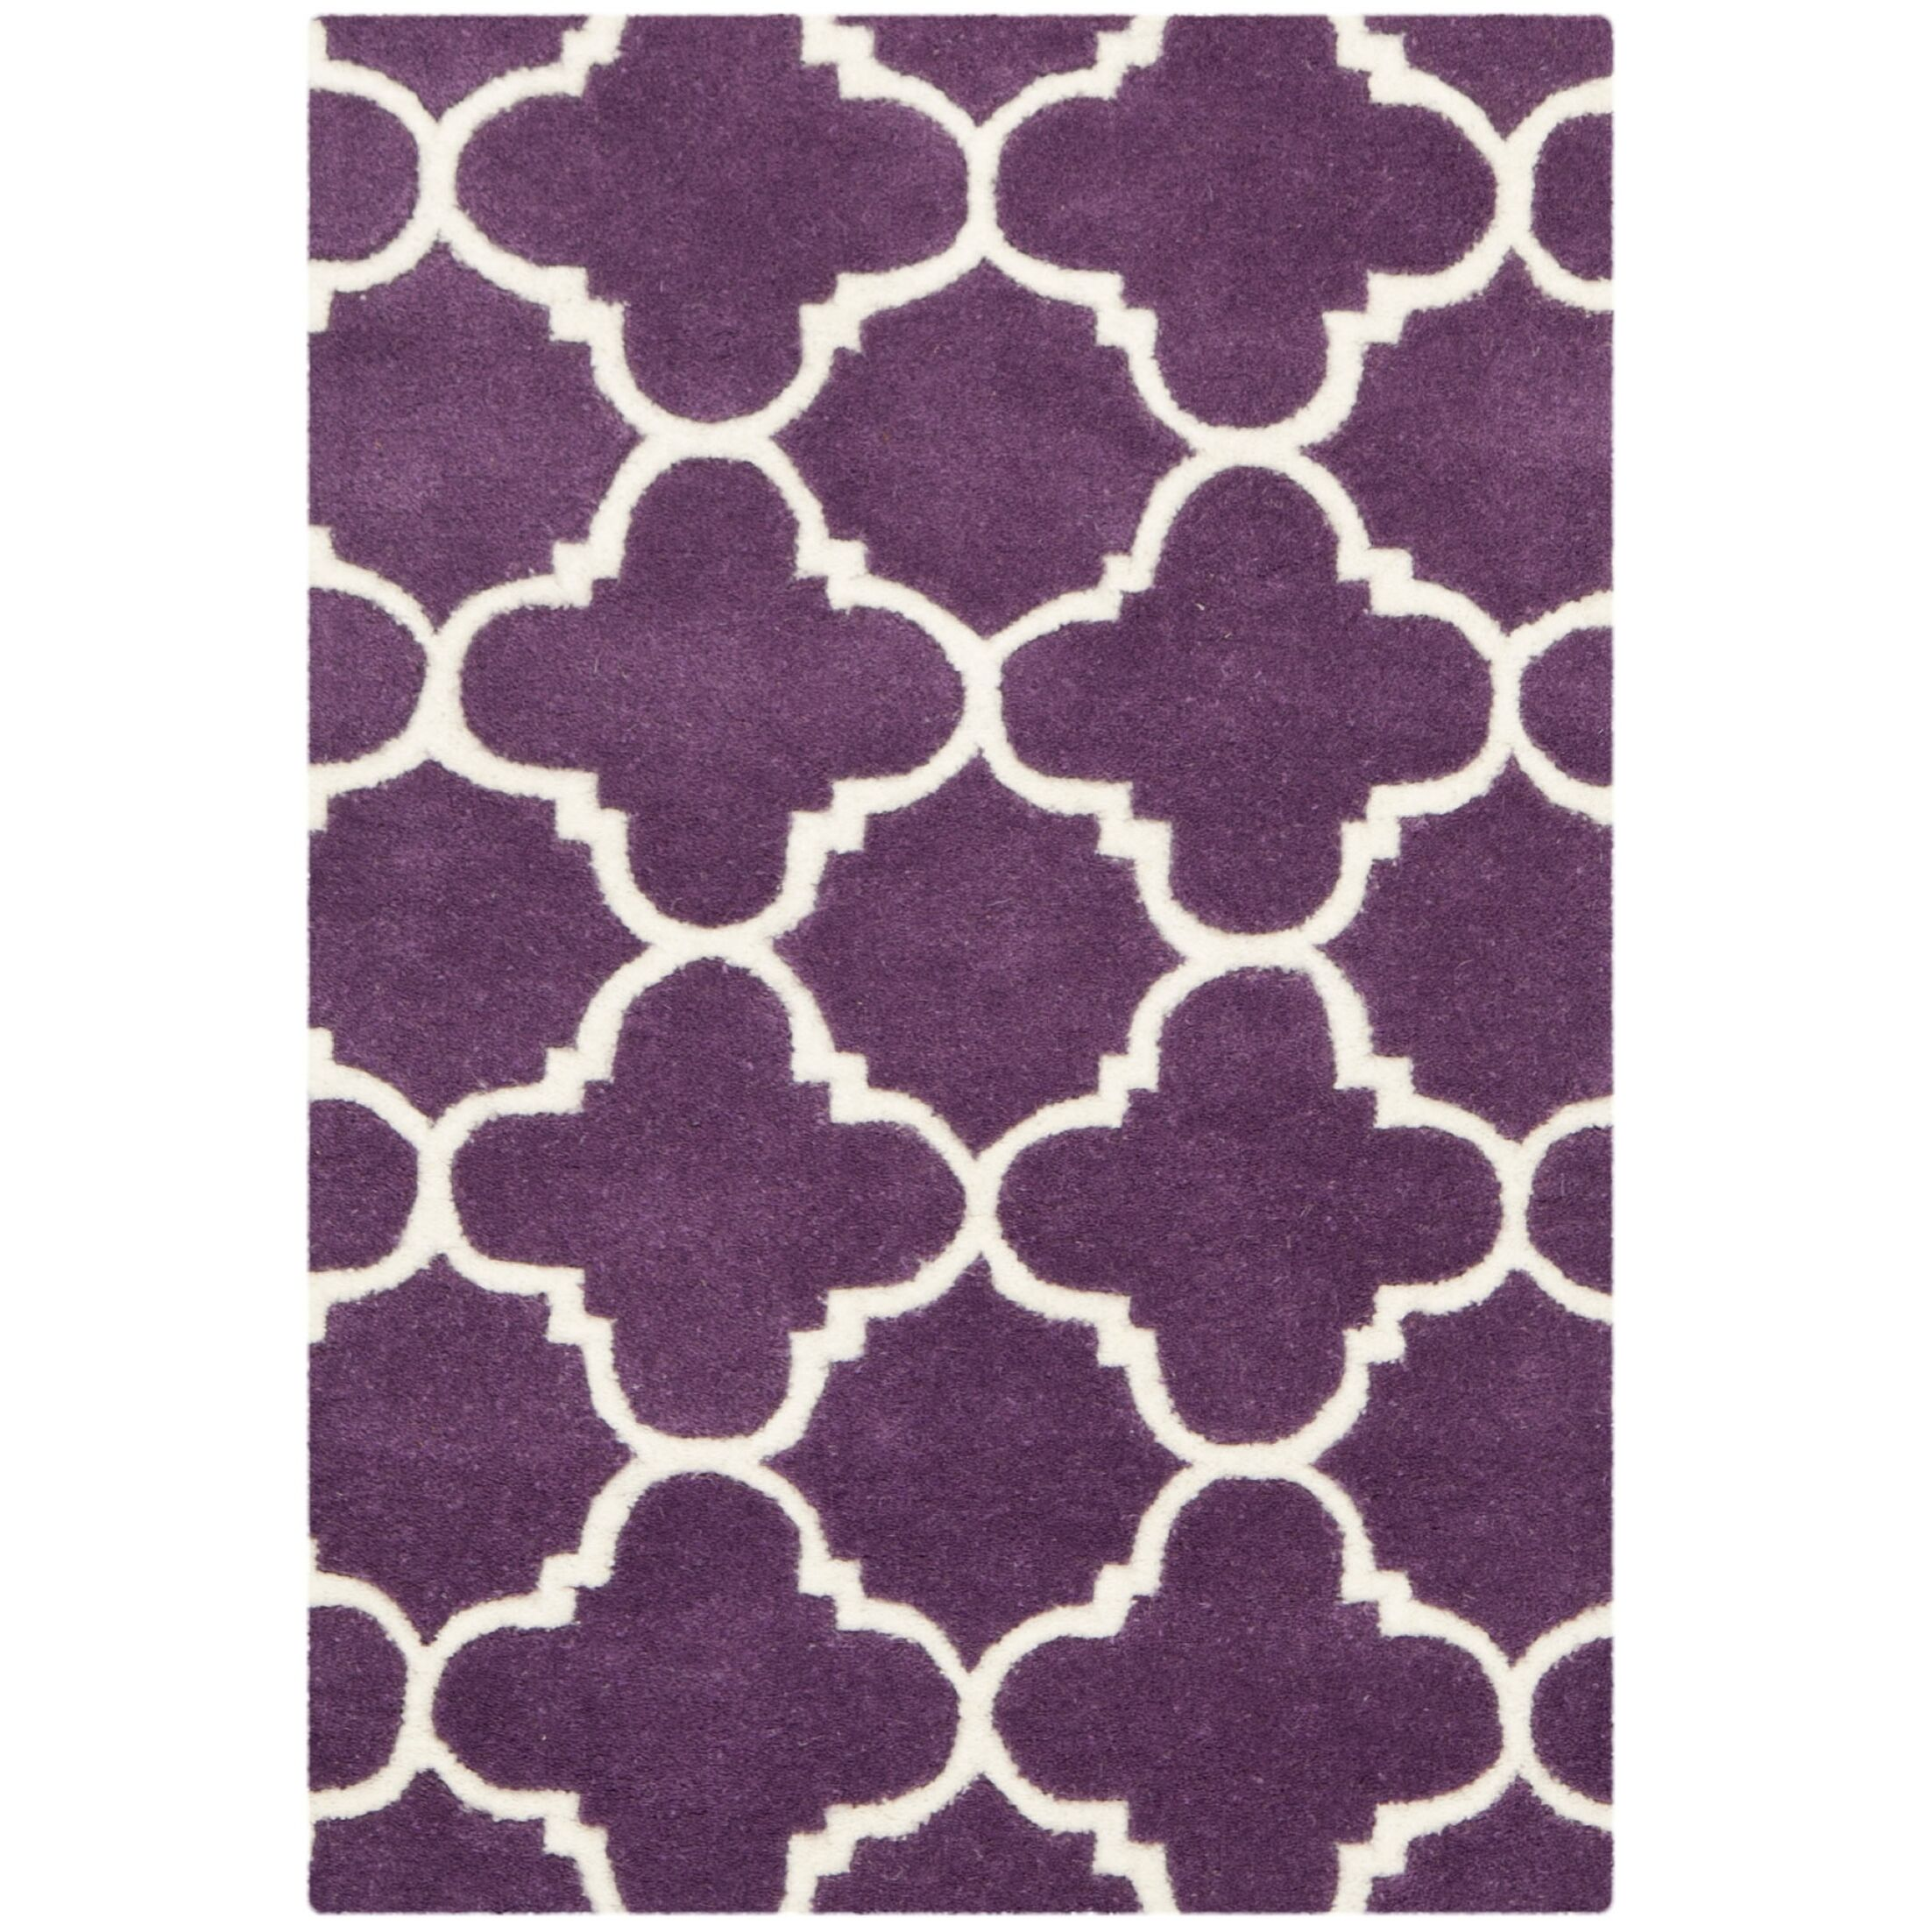 Wilkin Purple & Ivory Area Rug Rug Size: Rectangle 8' x 10'